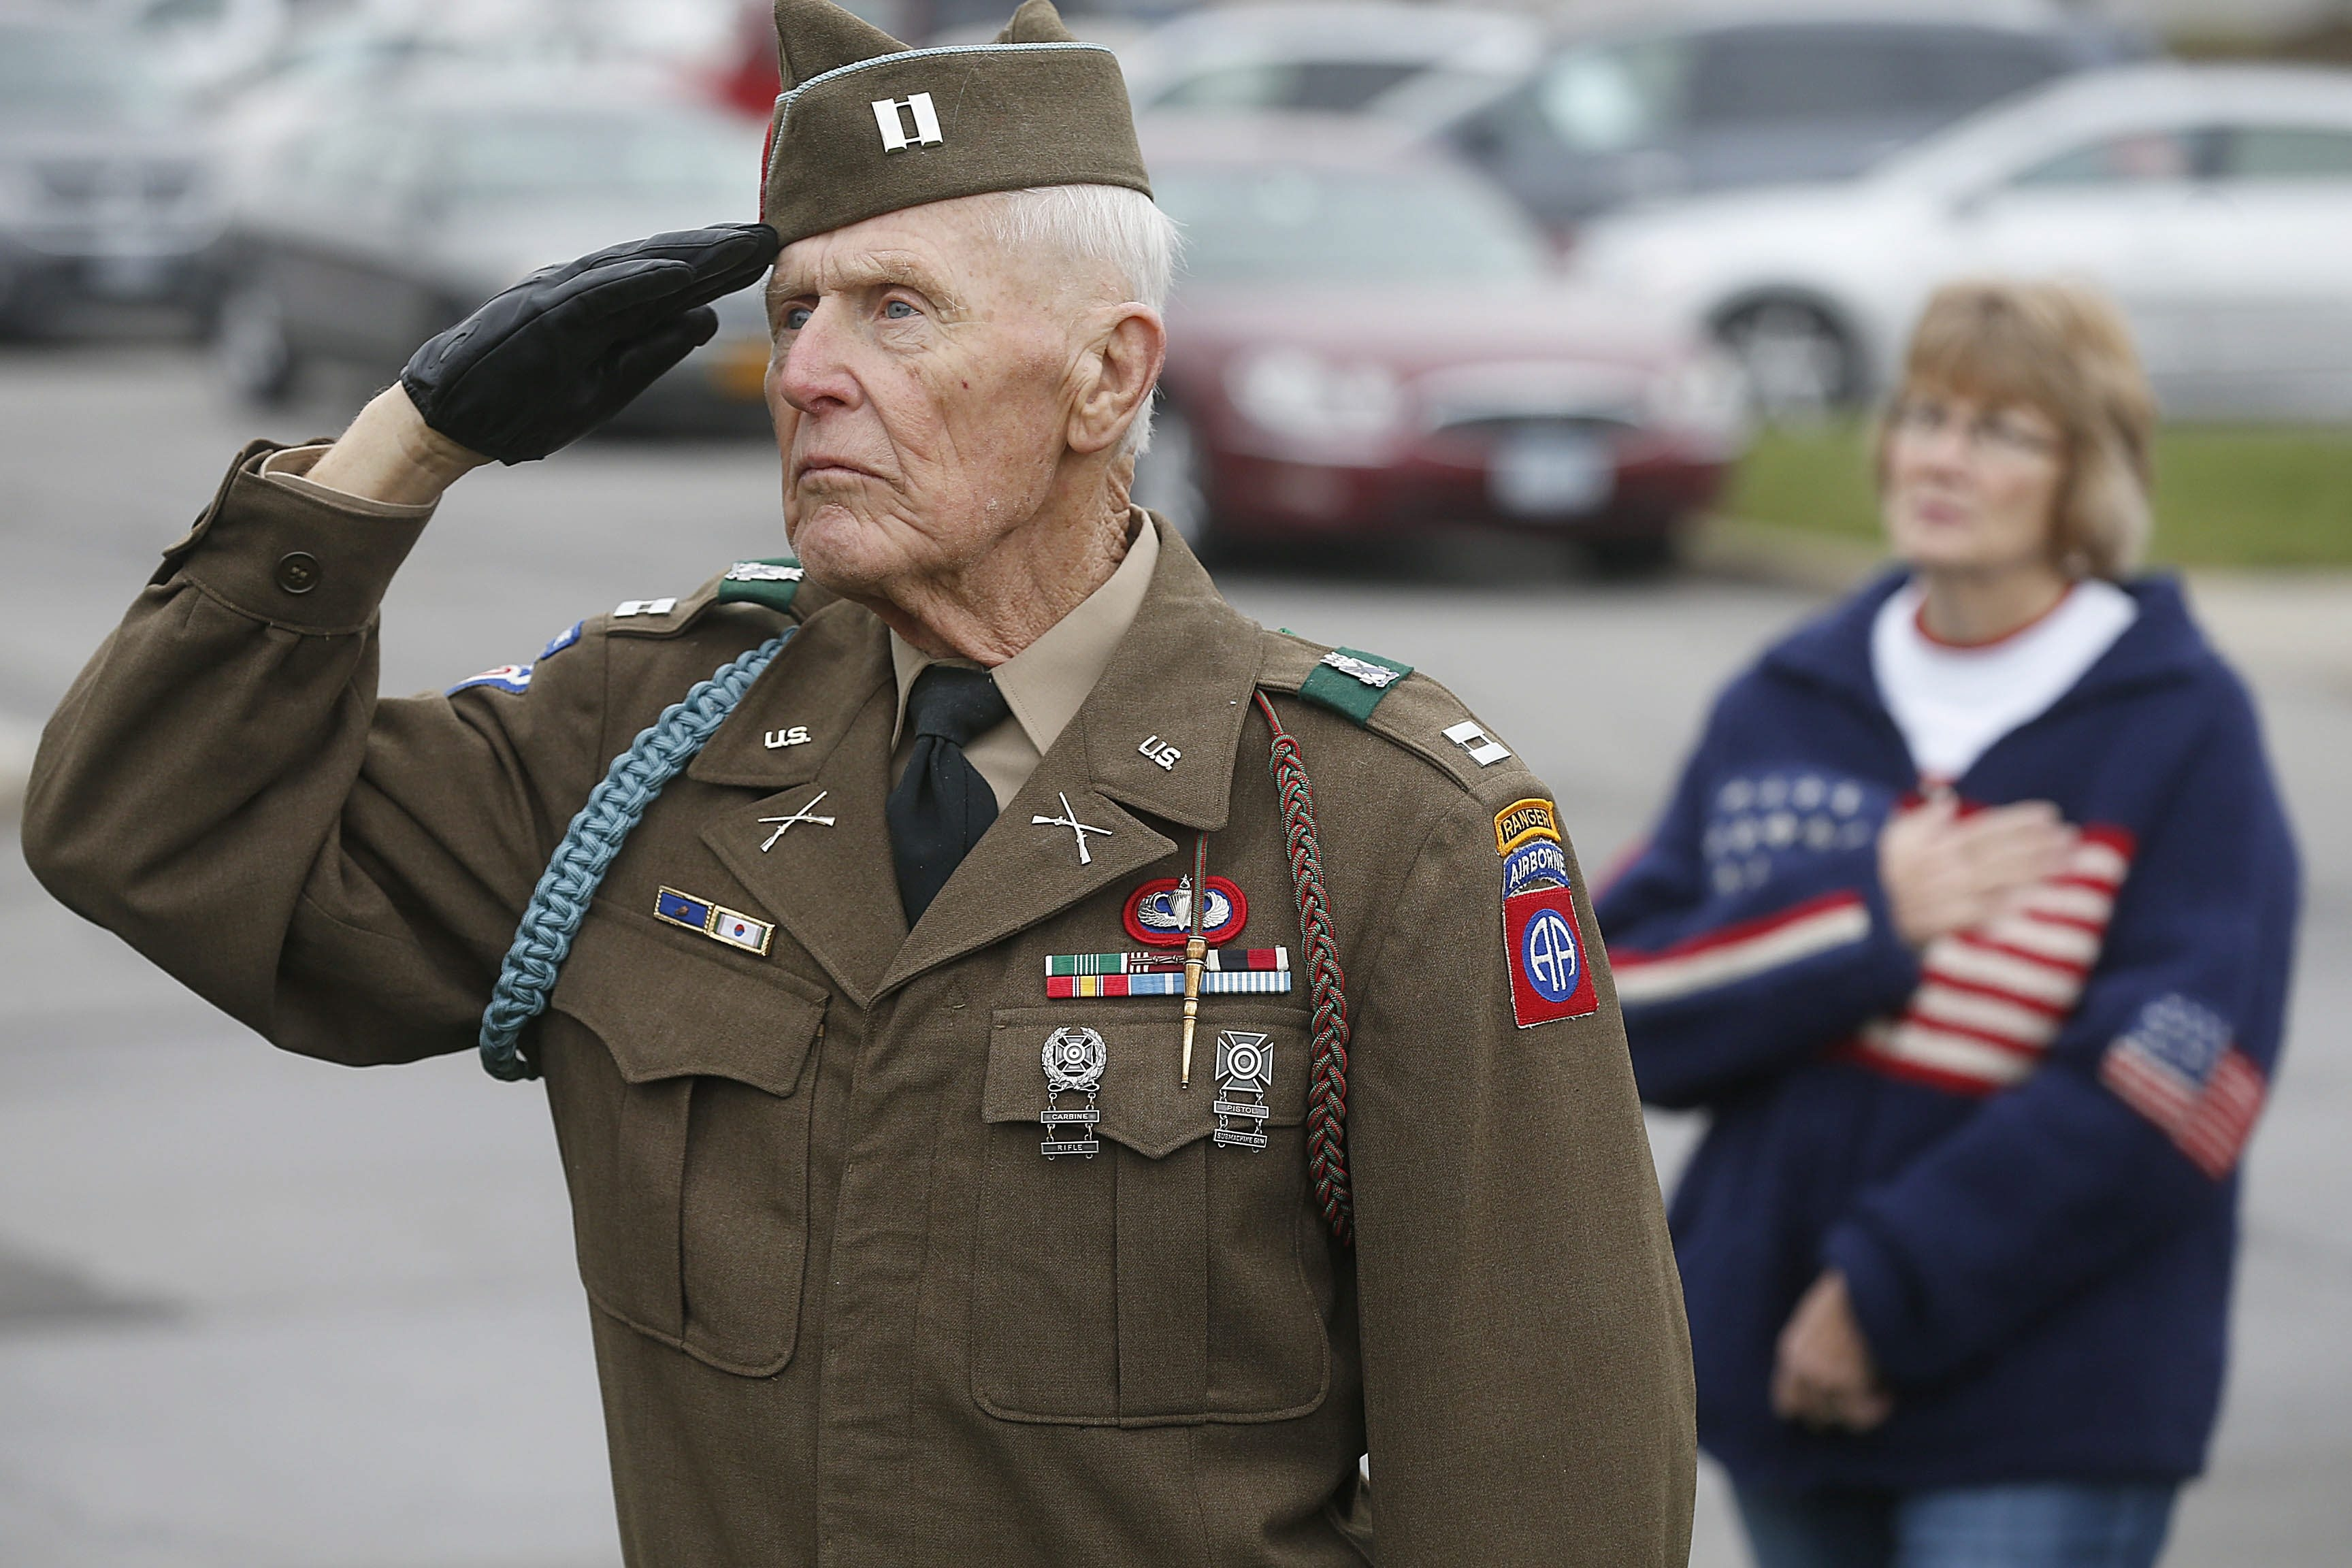 Former Army Capt. Gerald Nolan, 81, of Town of Tonawanda, who served in 82nd Airborne, salutes at Pearl Harbor event.